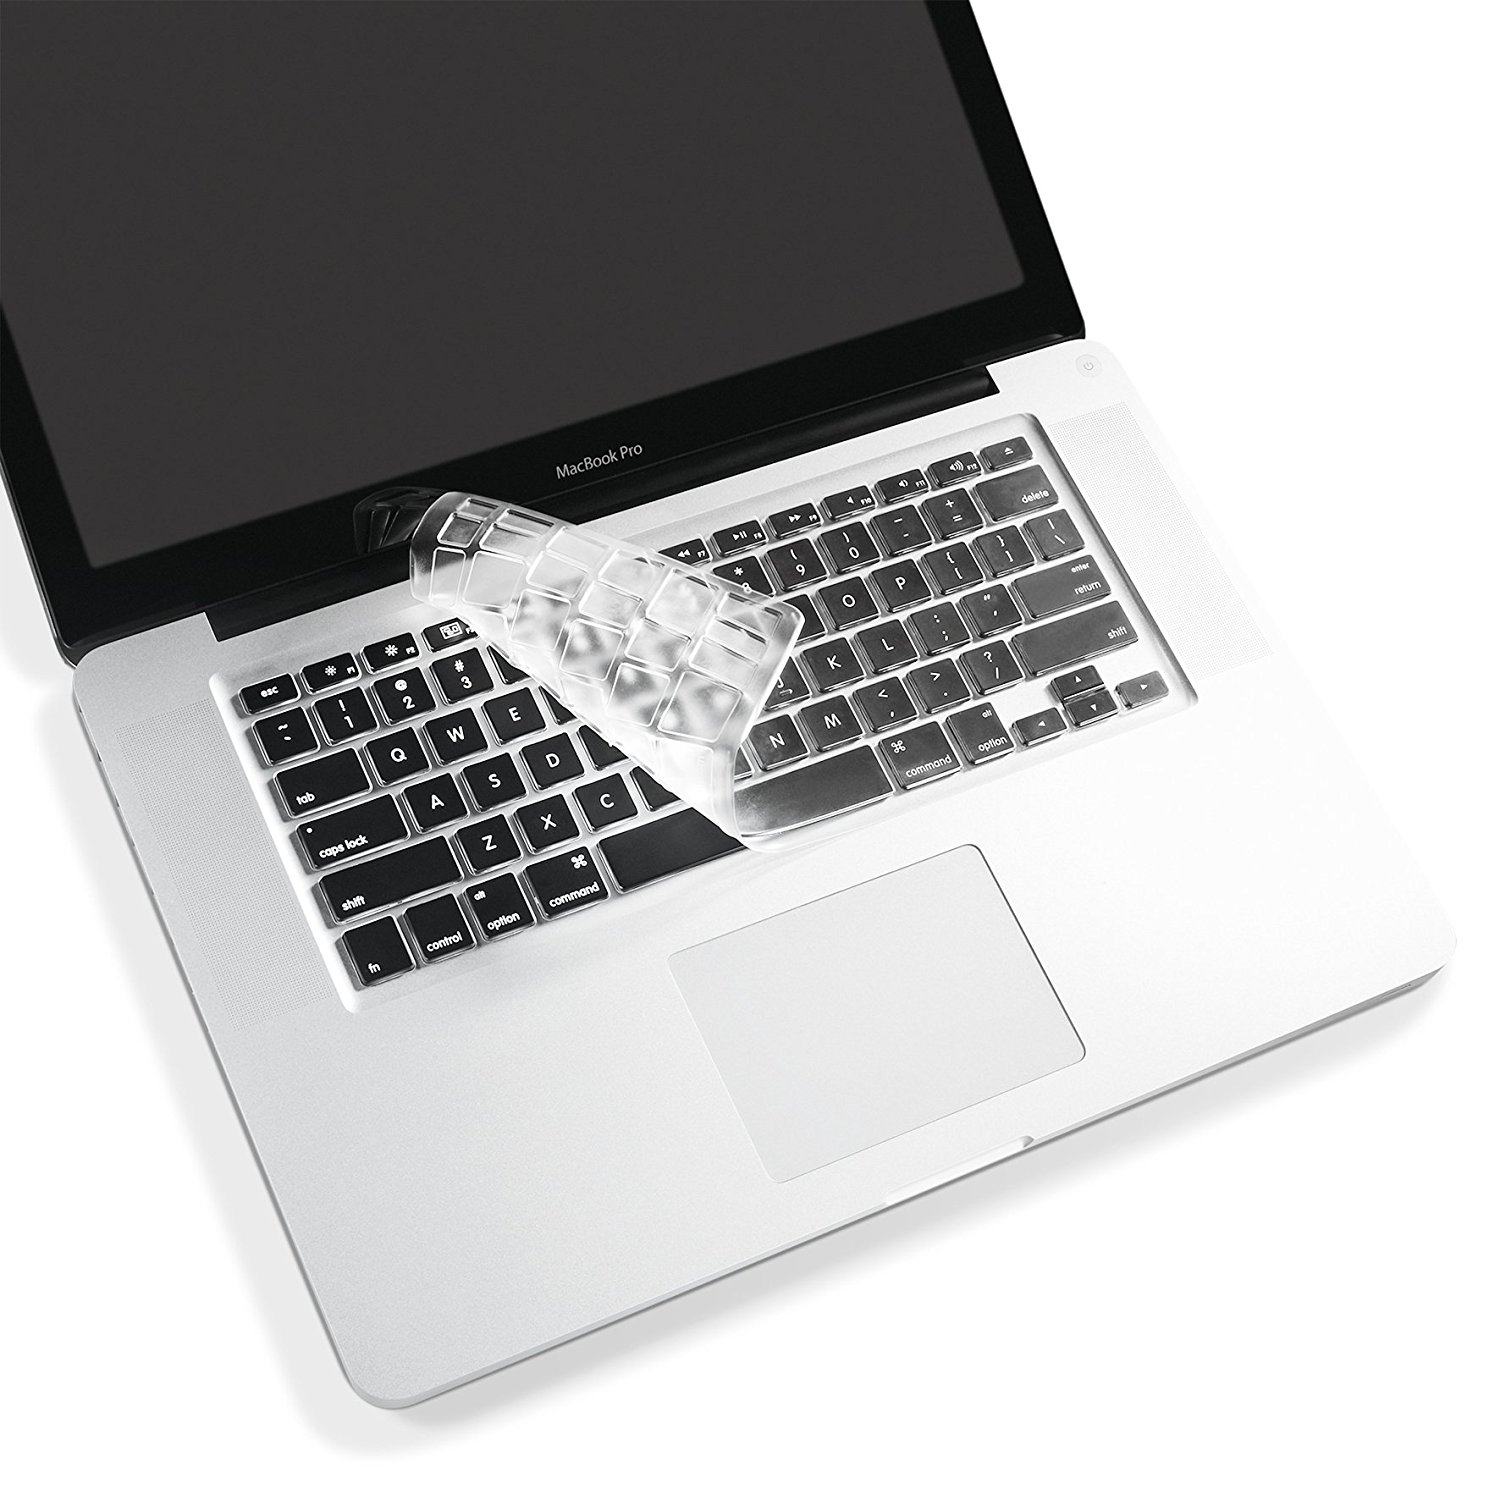 Moshi ClearGuard MB Keyboard Protector